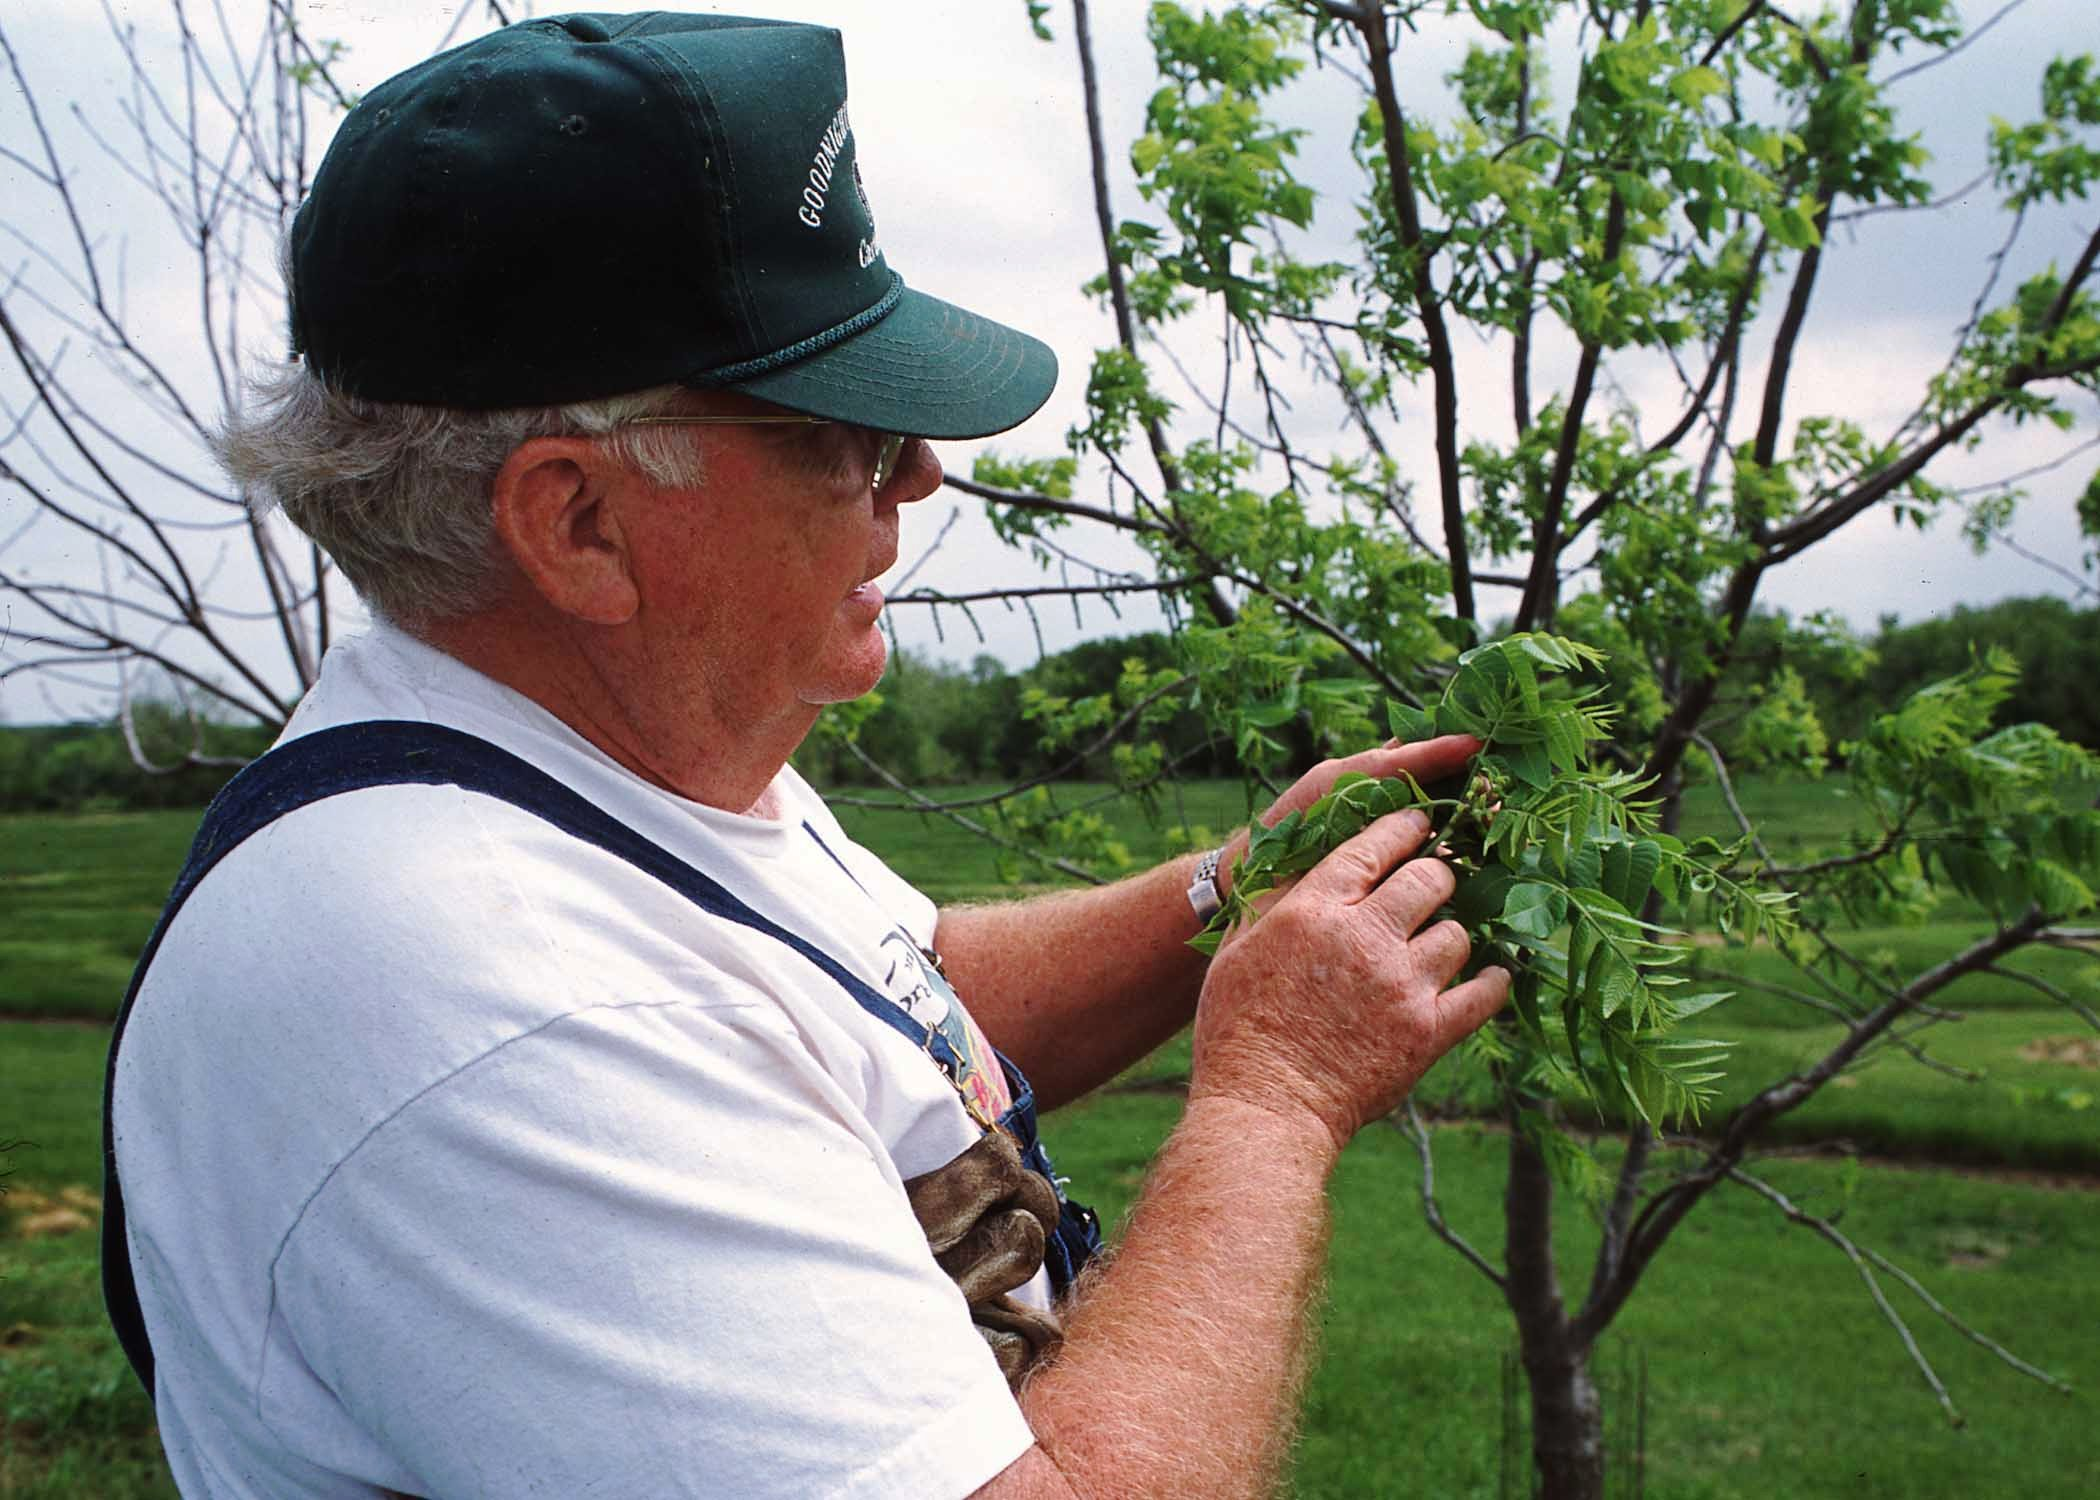 Man inspecting young tree for insects